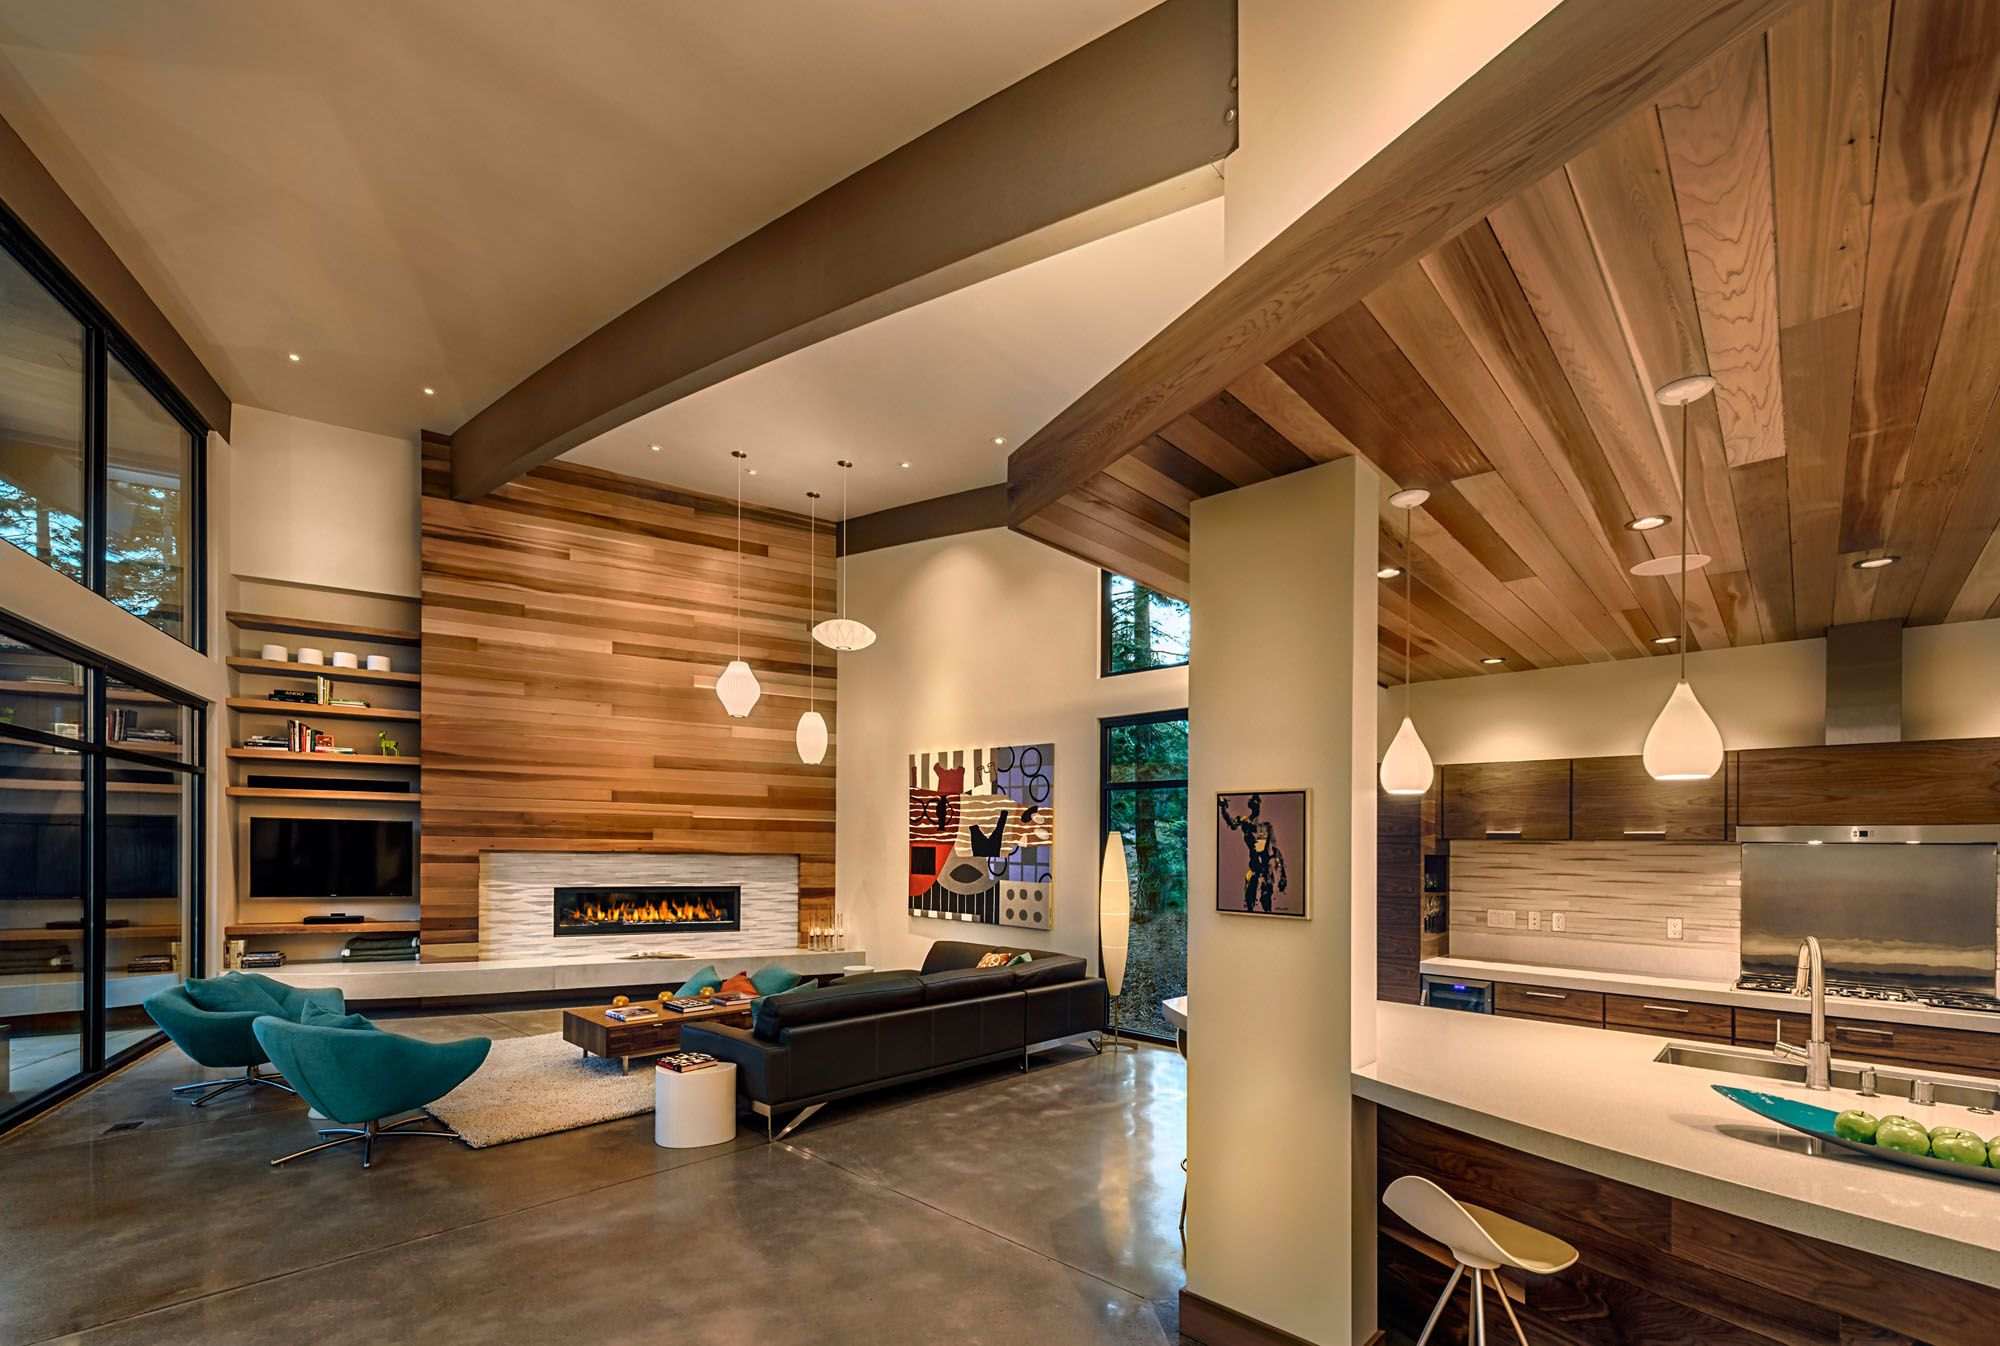 Kitchen and living area features polished concrete floors